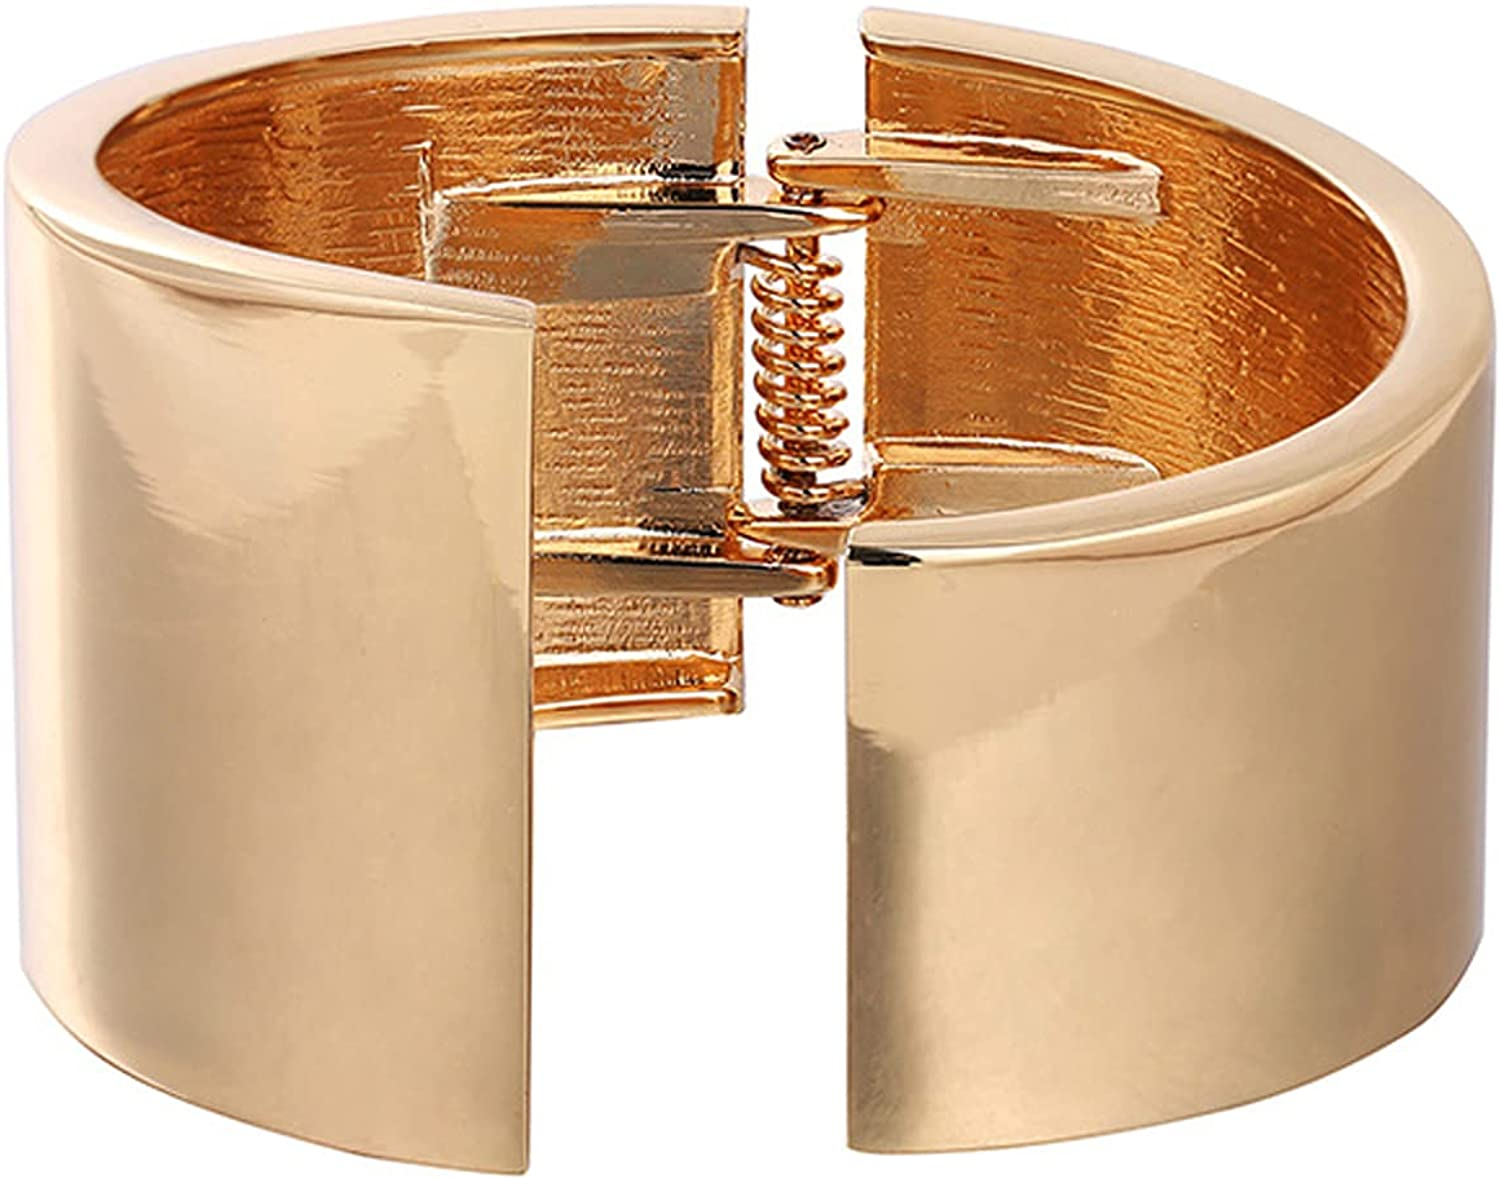 Gold Tone Wide-Edge Smooth Opening Bangle Bracelet Minimalist Polished Frosted Irregular Twist Grooved Cuff Bracelet Gothic Style Chunky Statement Fashion Jewelry for Women Teen Girl